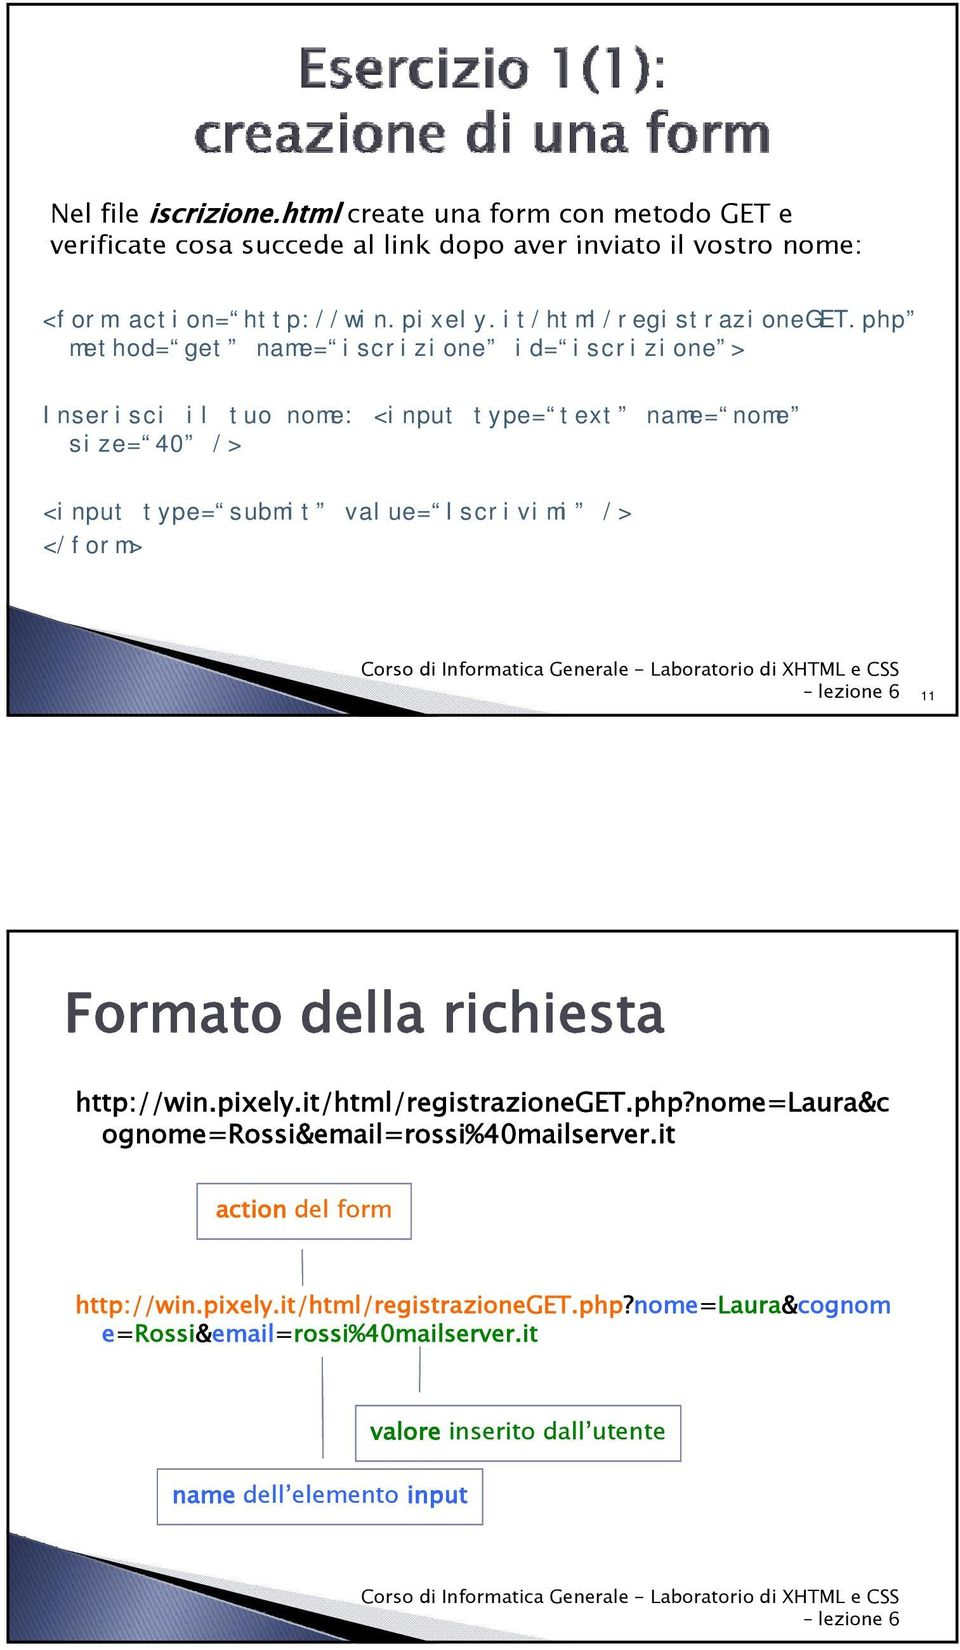 php method= get name= iscrizione id= iscrizione > Inserisci il tuo nome: <input type= text name= nome size= 40 /> <input type= submit value= Iscrivimi /> </form>